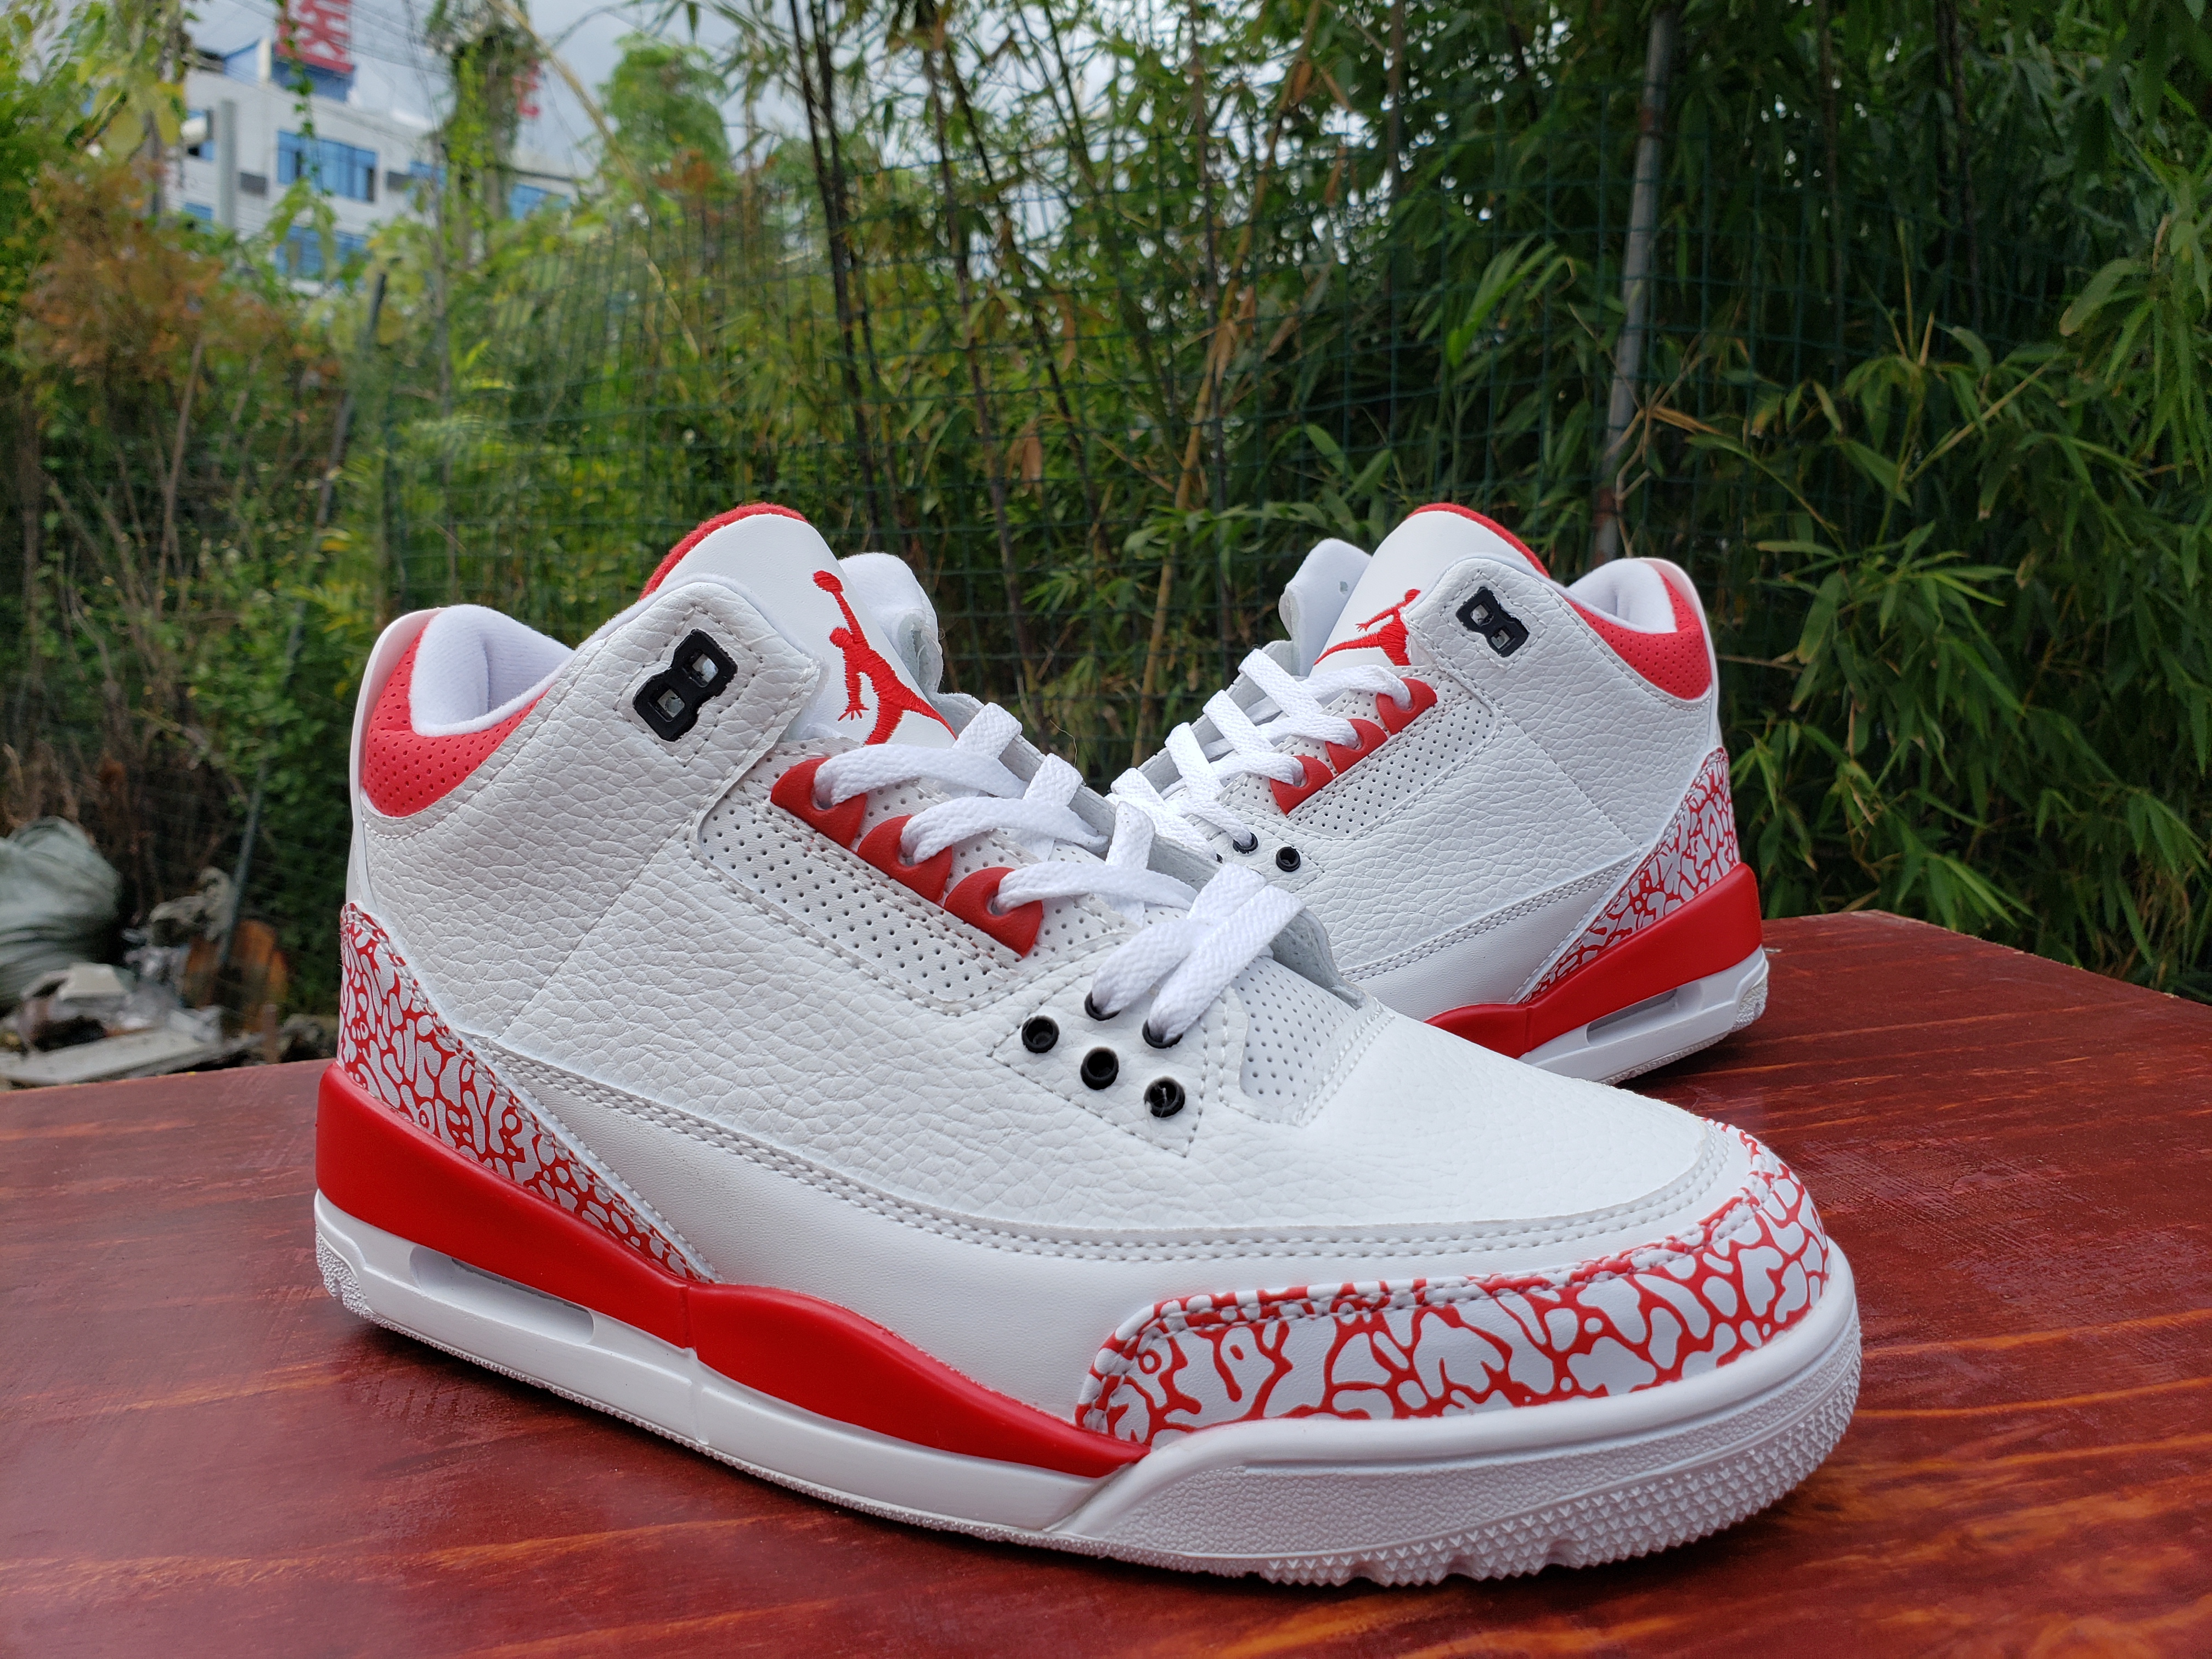 2020 Air Jordan 3 Retro White Red Shoes